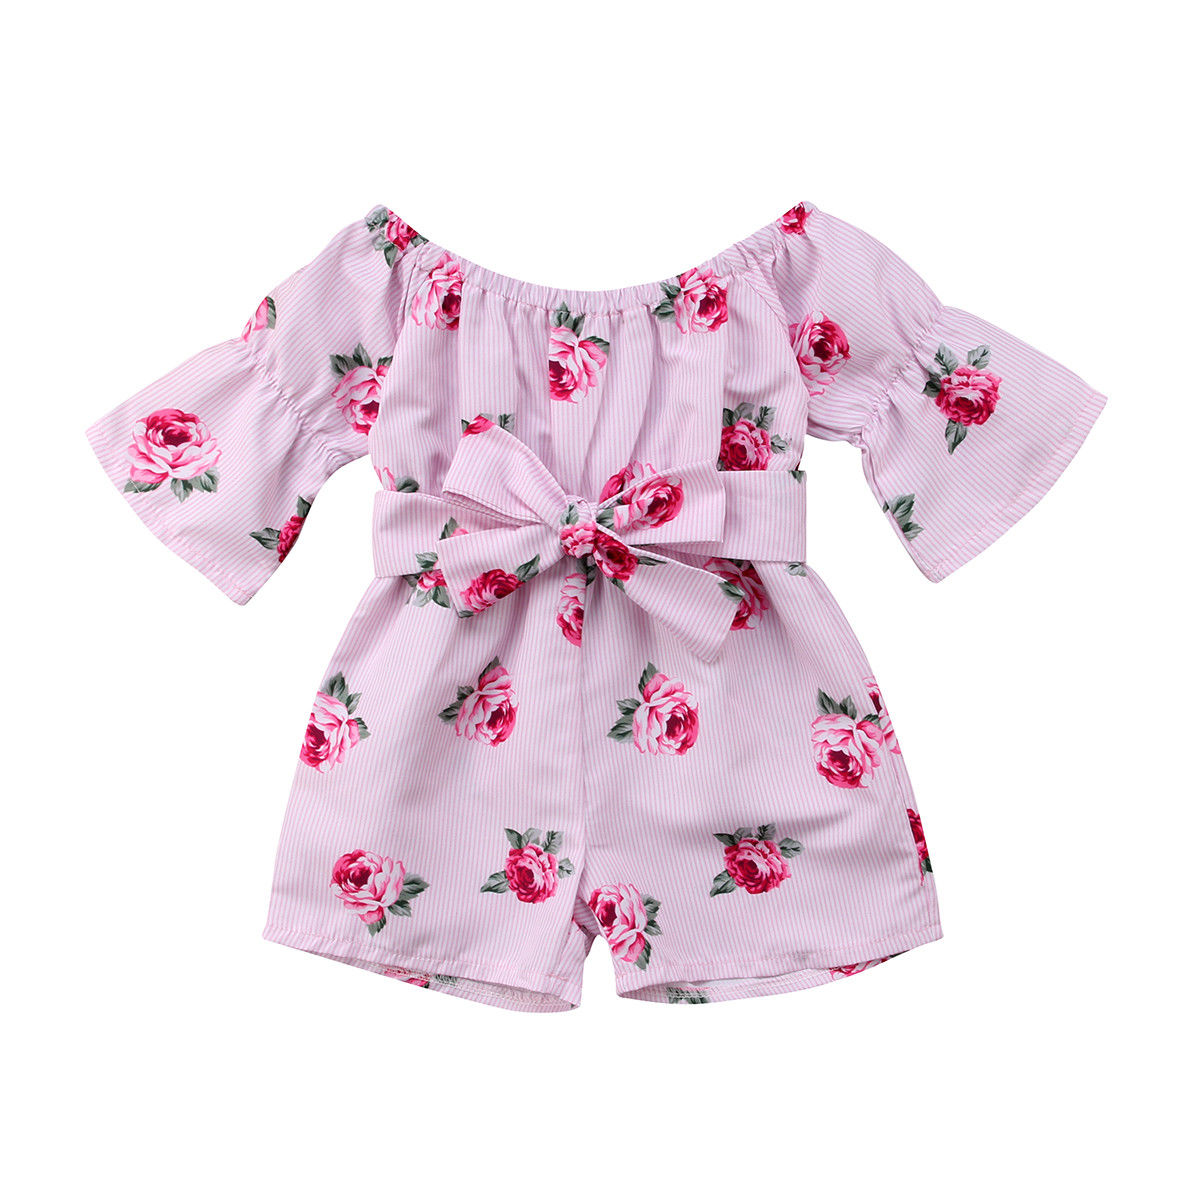 Toddler Baby Girl Clothes Floral Romper Jumpsuit Overalls Off Shoulder Flare Sleeve Sunsuit Summer Clothes Playsuit Outfits 0-5T